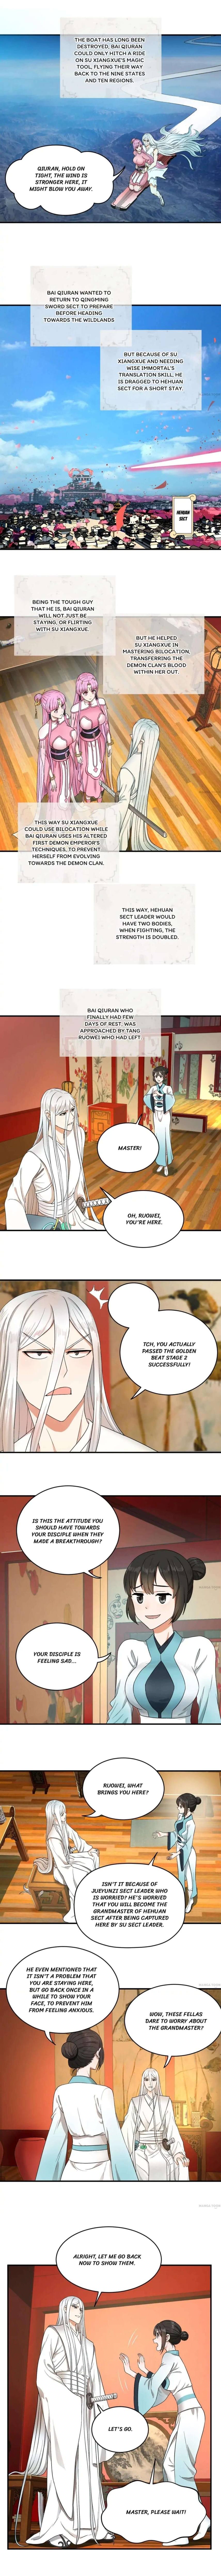 Manga My Three Thousand Years To The Sky - Chapter 117 Page 1